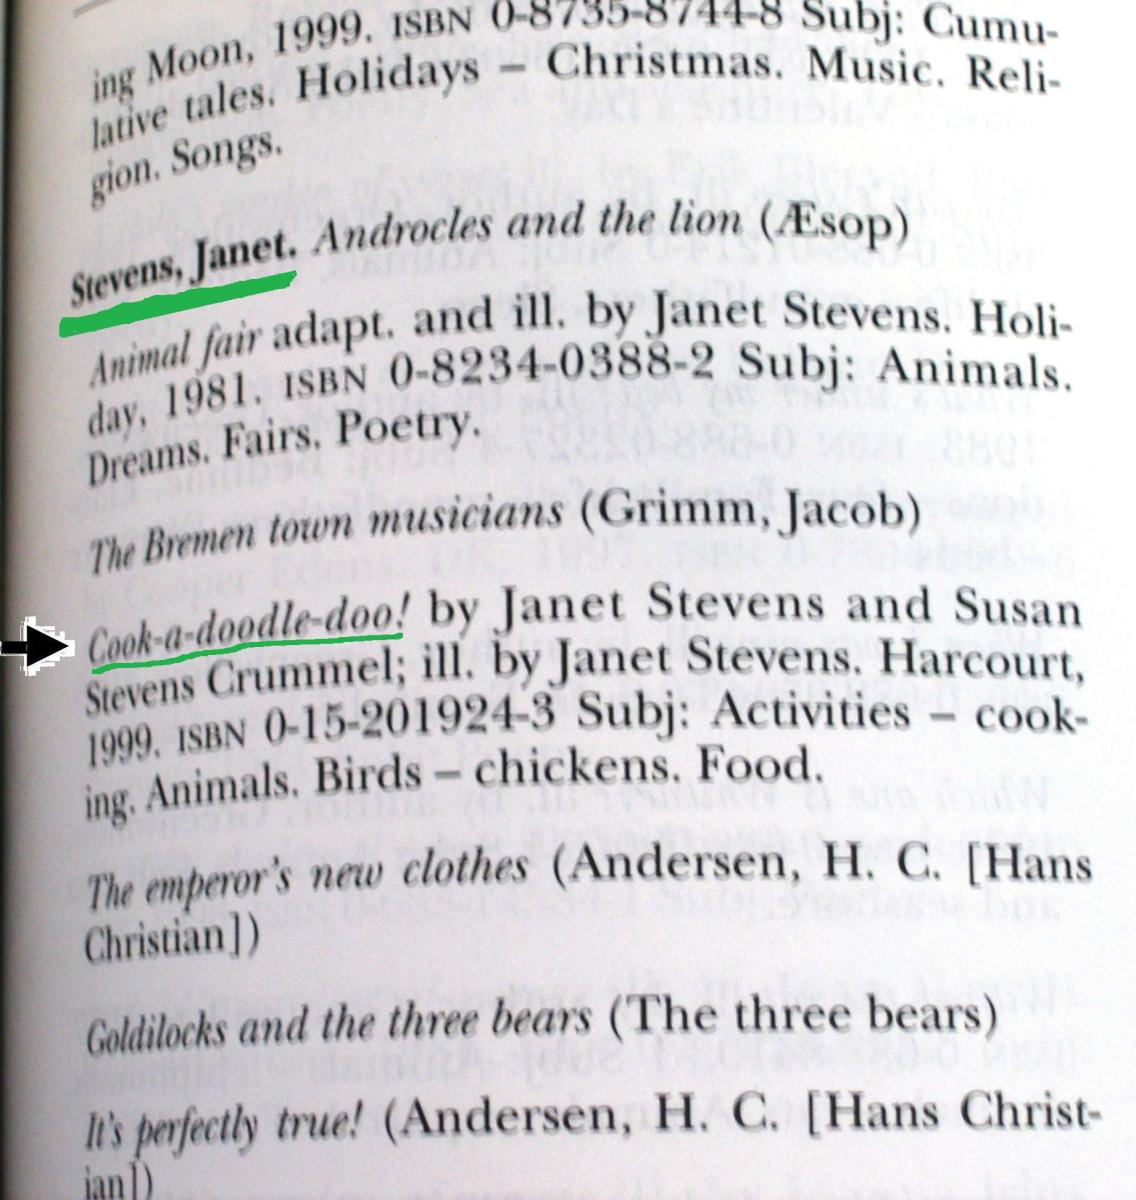 In the author index of AtoZoo, I found Janet Stevens and information for the book Cook-A-Doodle-Doo.